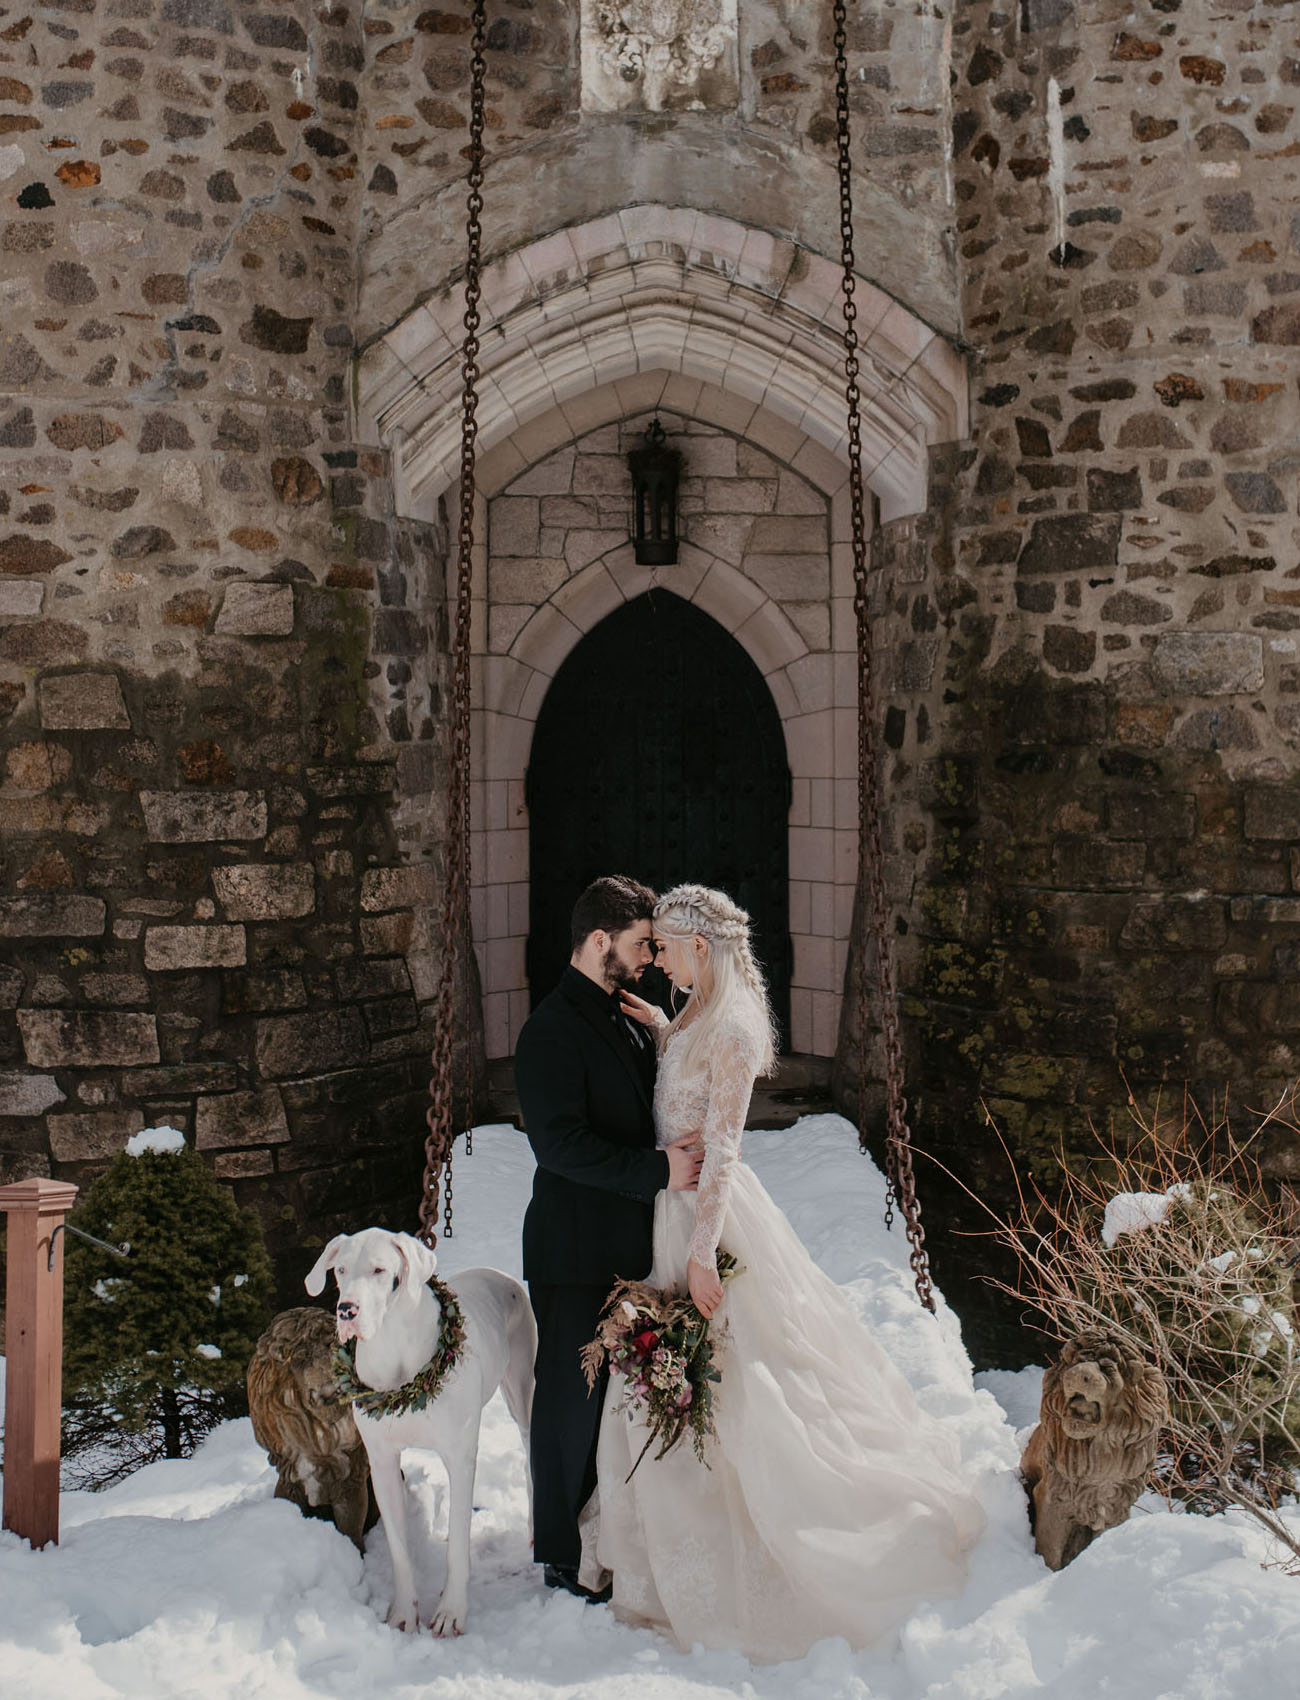 A Marriage Of Ice And Fire The Game Of Thrones Inspired Wedding You Ve Got To See To Believe Green Wedding Shoes